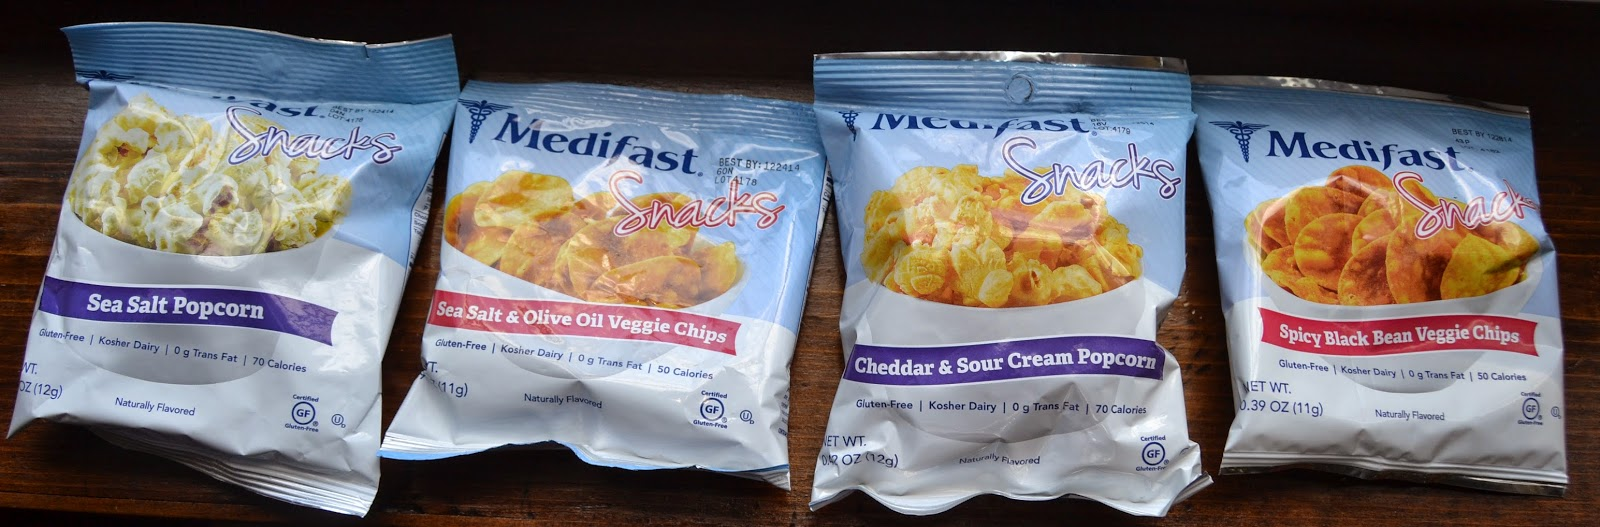 Medifast snacks